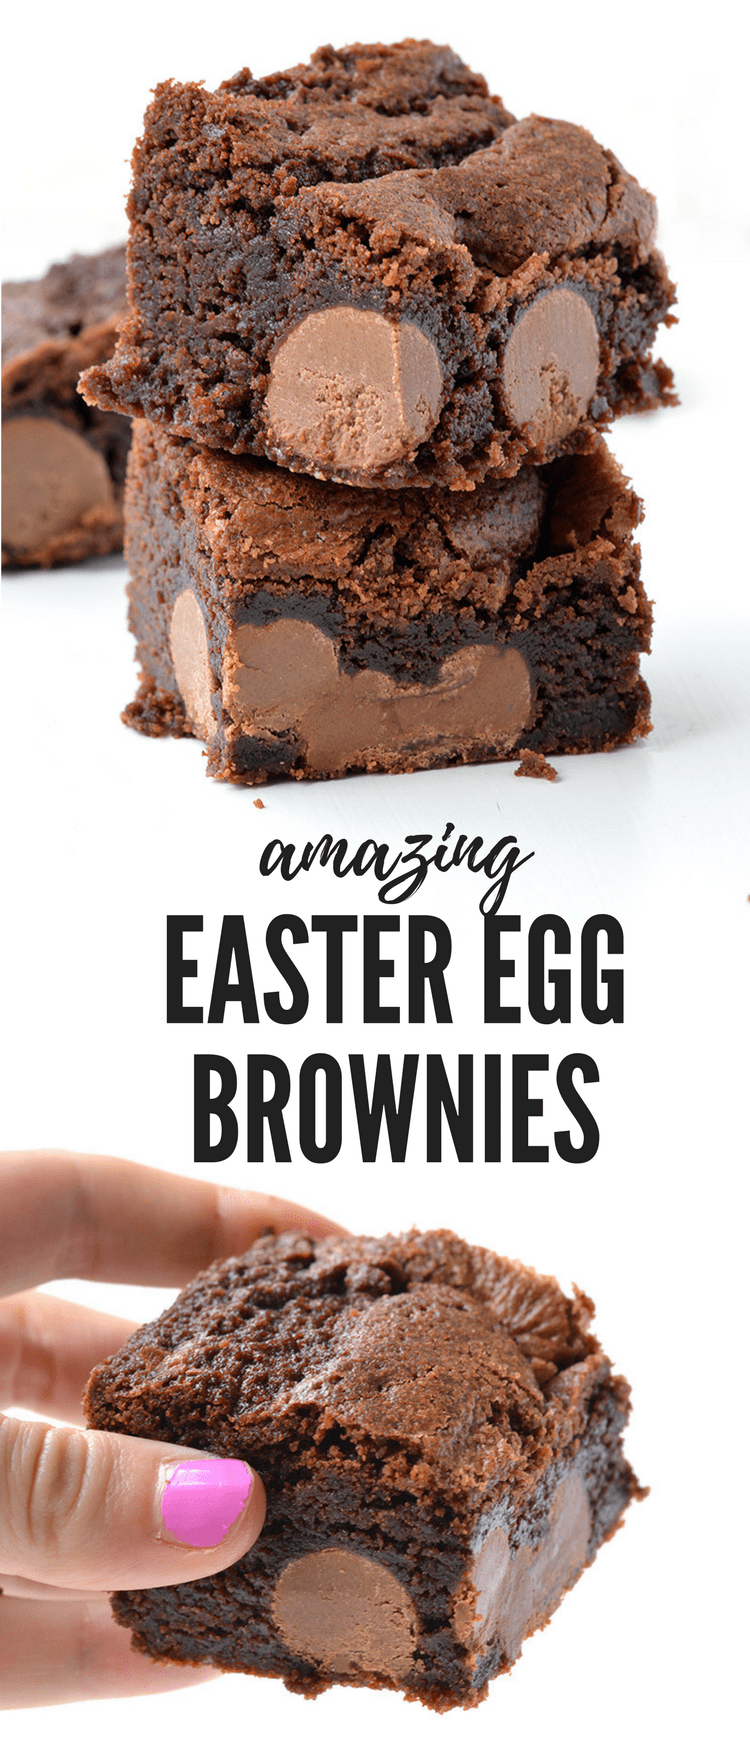 Brownies clipart easter chocolate. Egg sweetest menu amazing